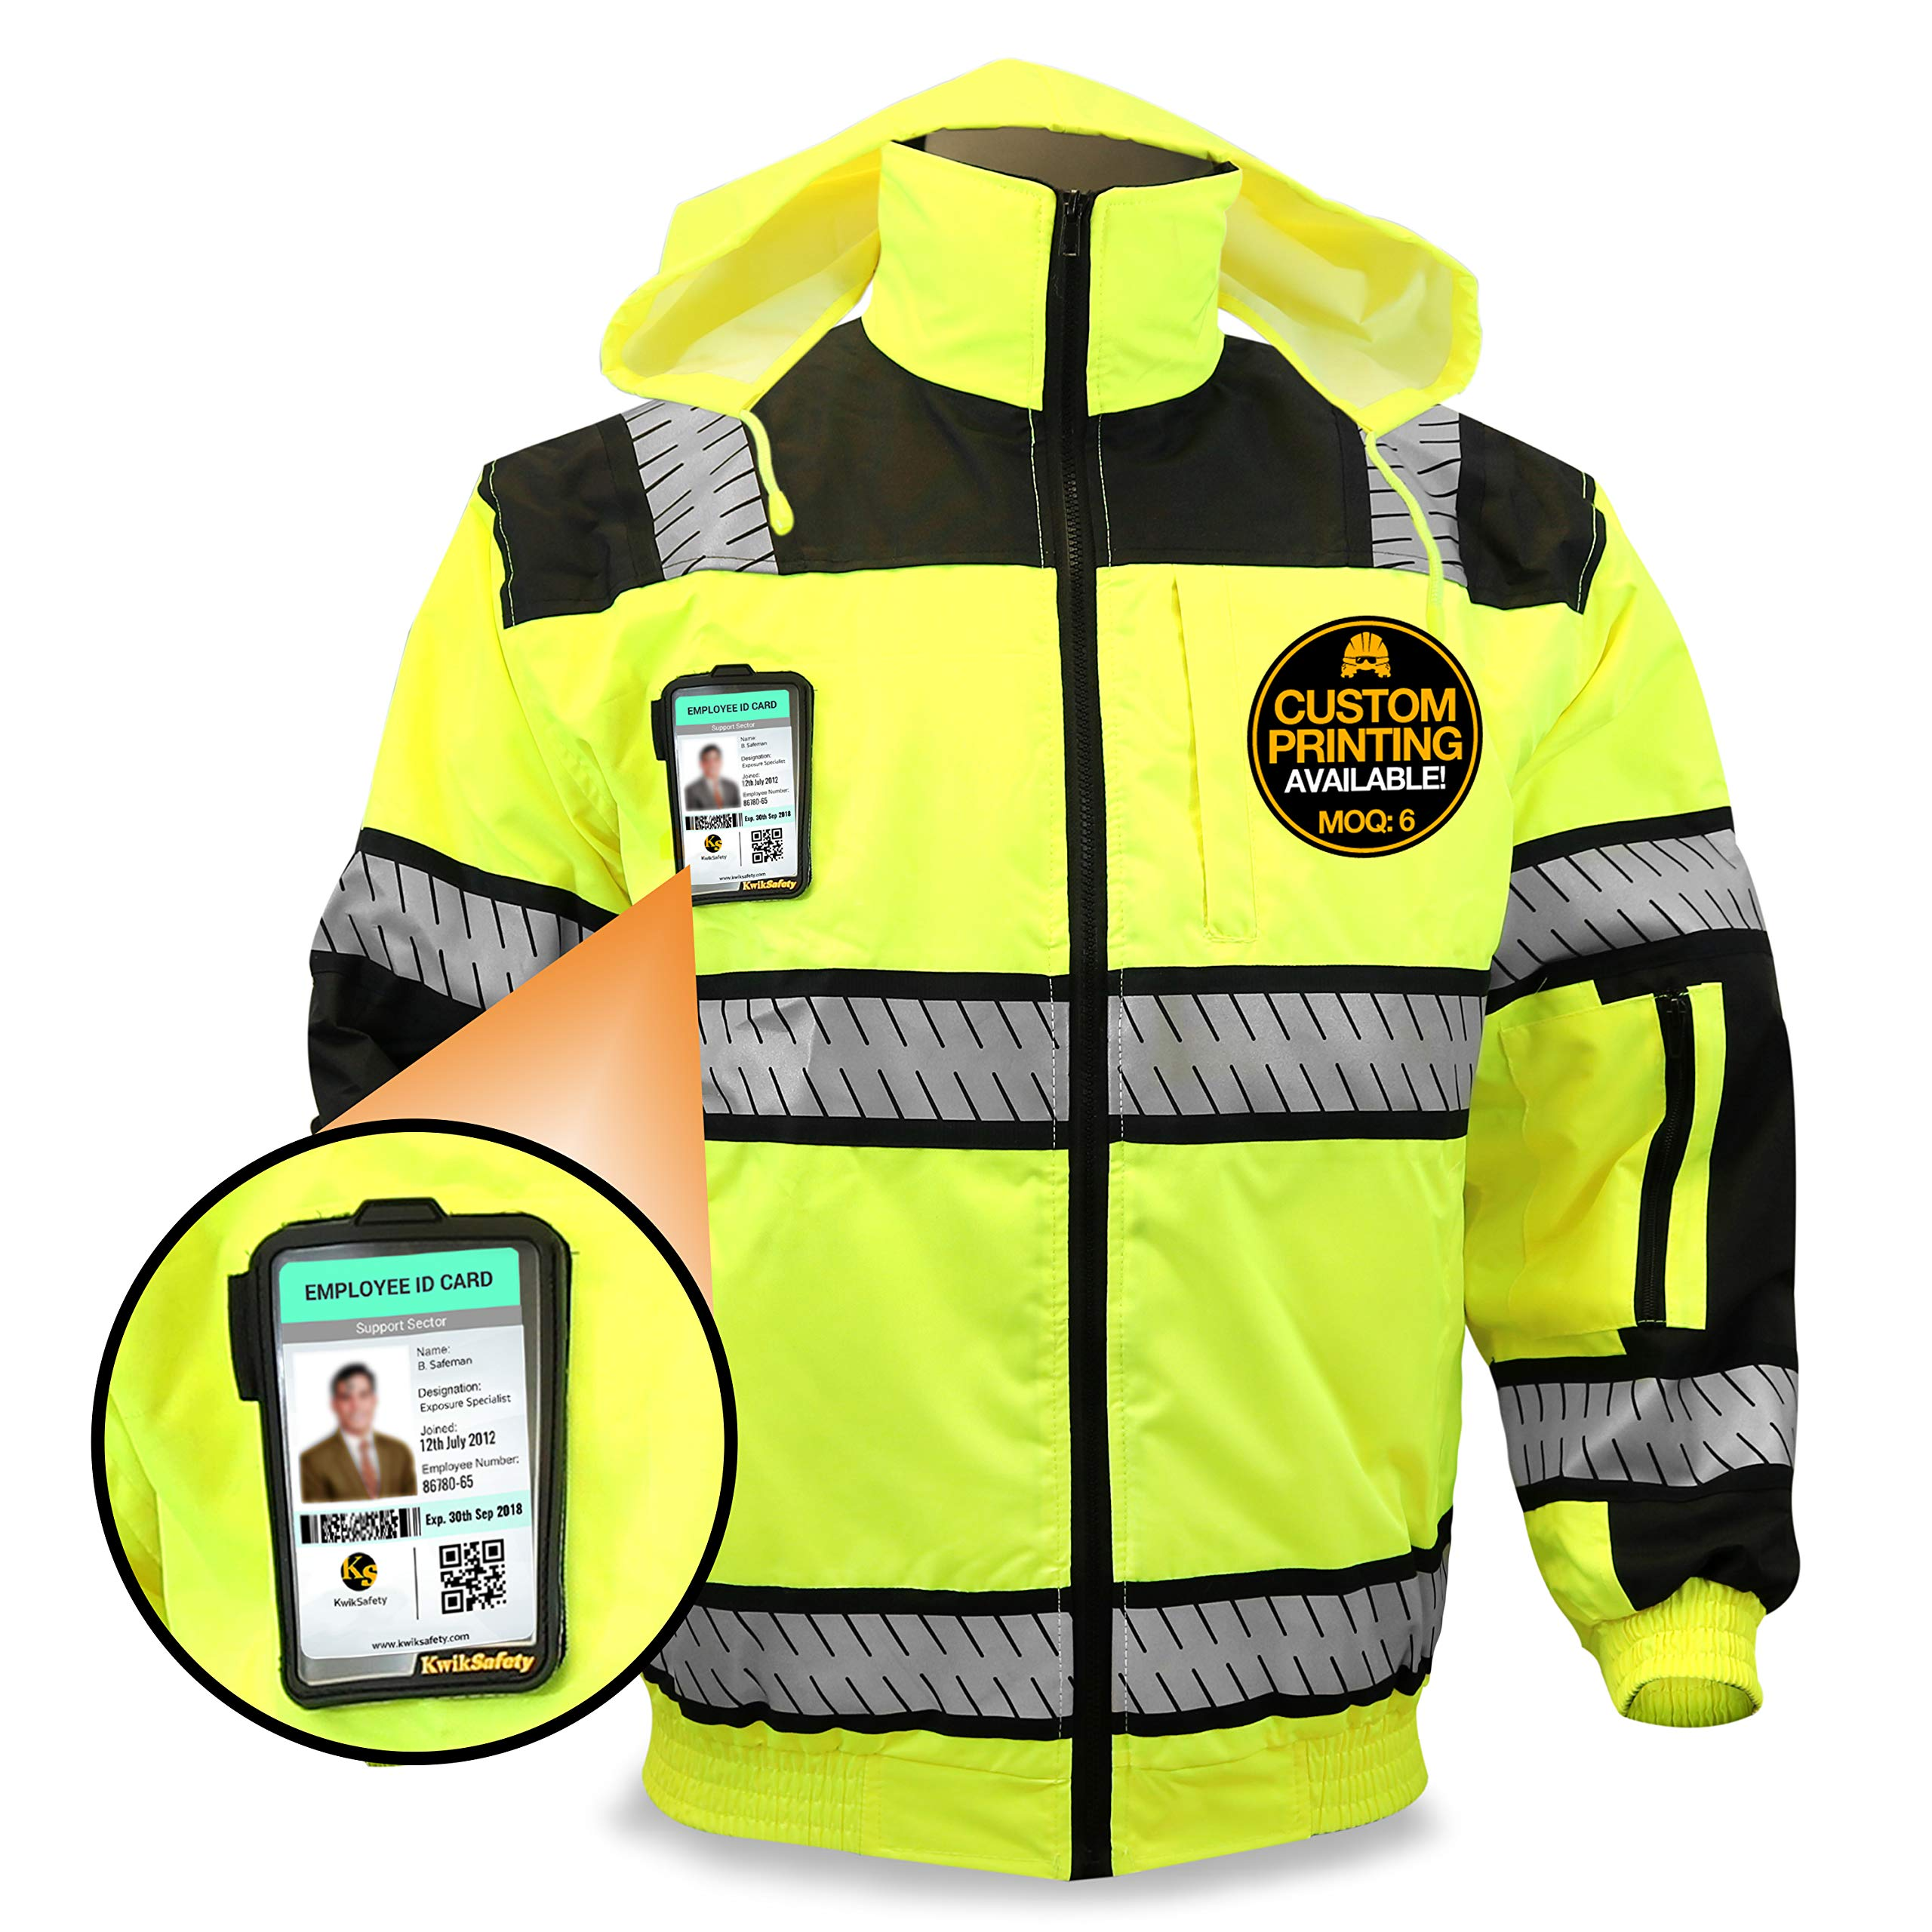 KwikSafety ENFORCER | Class 3 Safety Bomber Jacket | 360° High Visibility ANSI Compliant OSHA Approved | Detachable Chest iPocket Foldable Hoodie Thermal Lining Construction Work Wear | XX-Large by KwikSafety